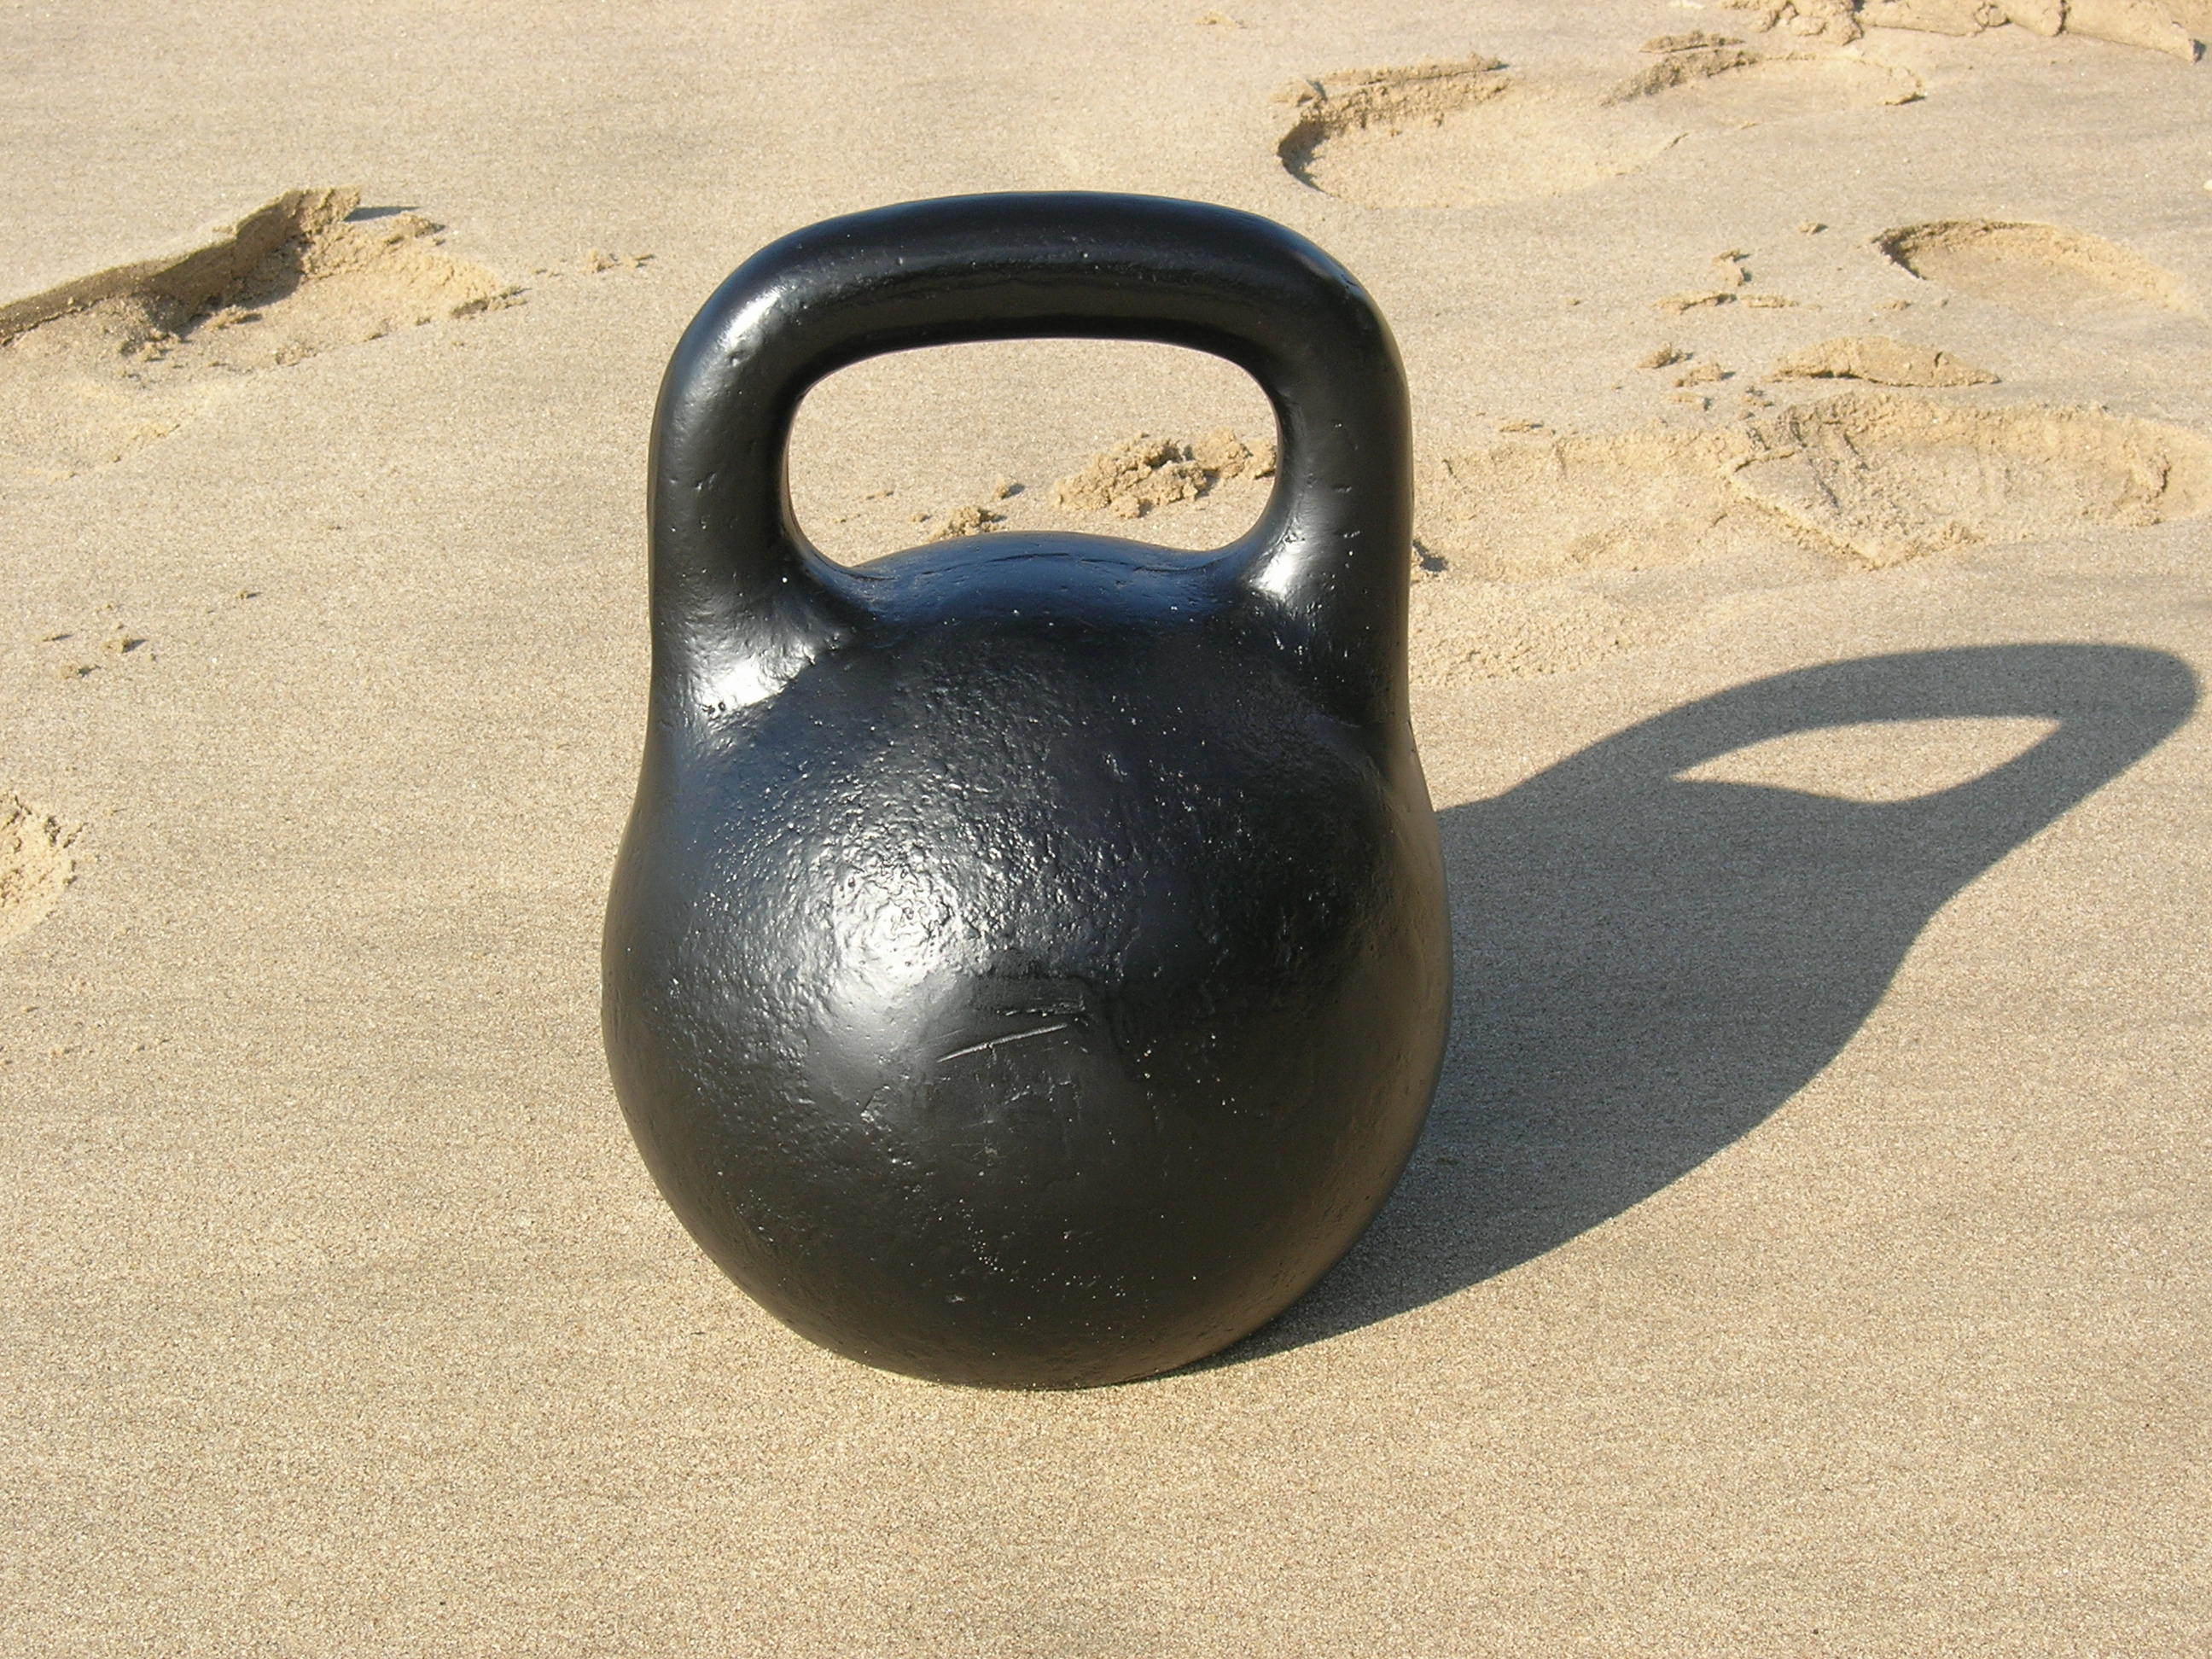 Buying My First Kettlebell – What Size?